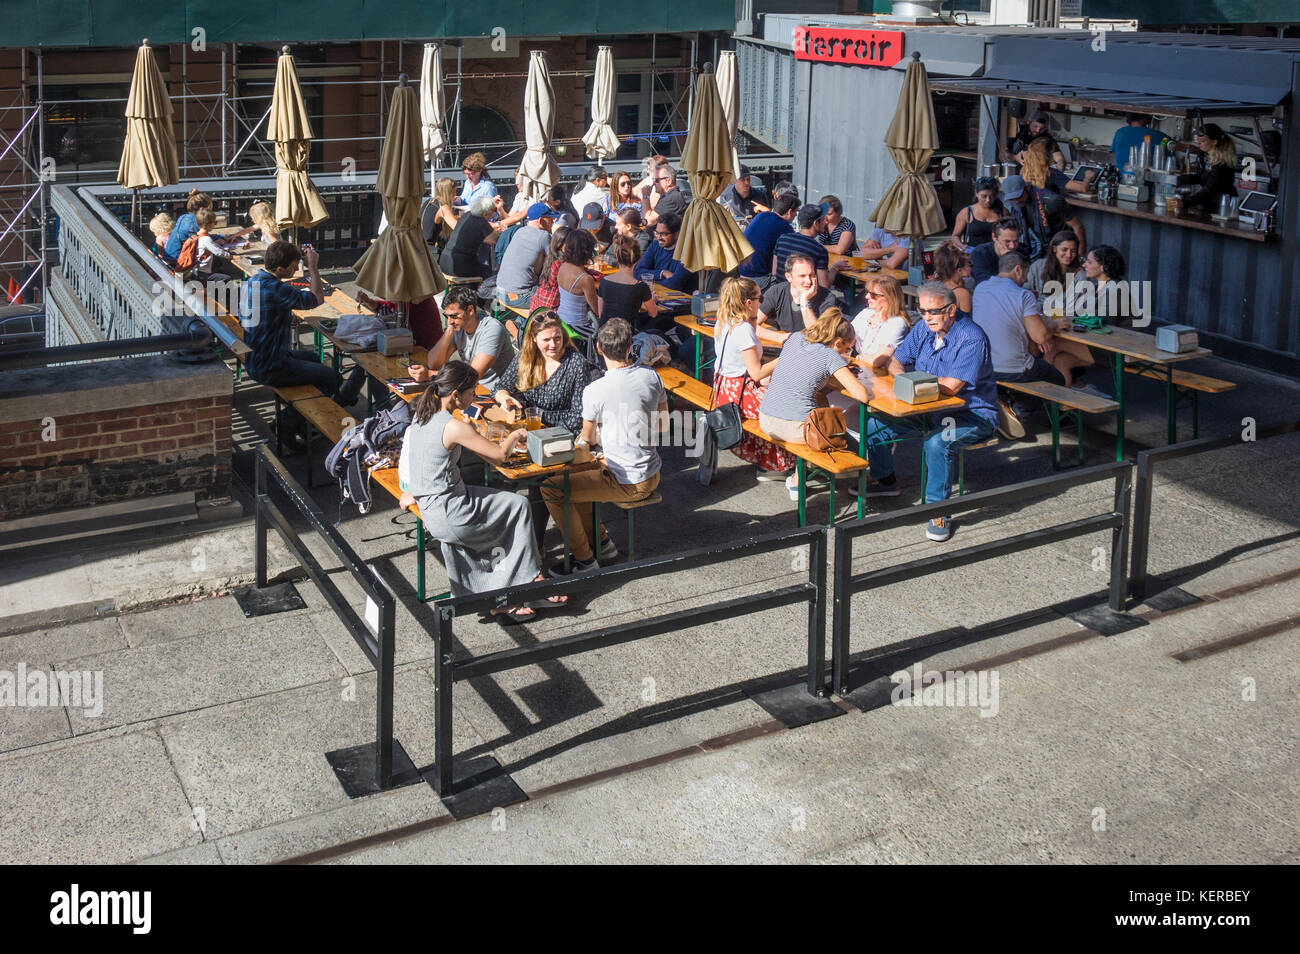 People dining at Terroir on the High Line in New York City - Stock Image